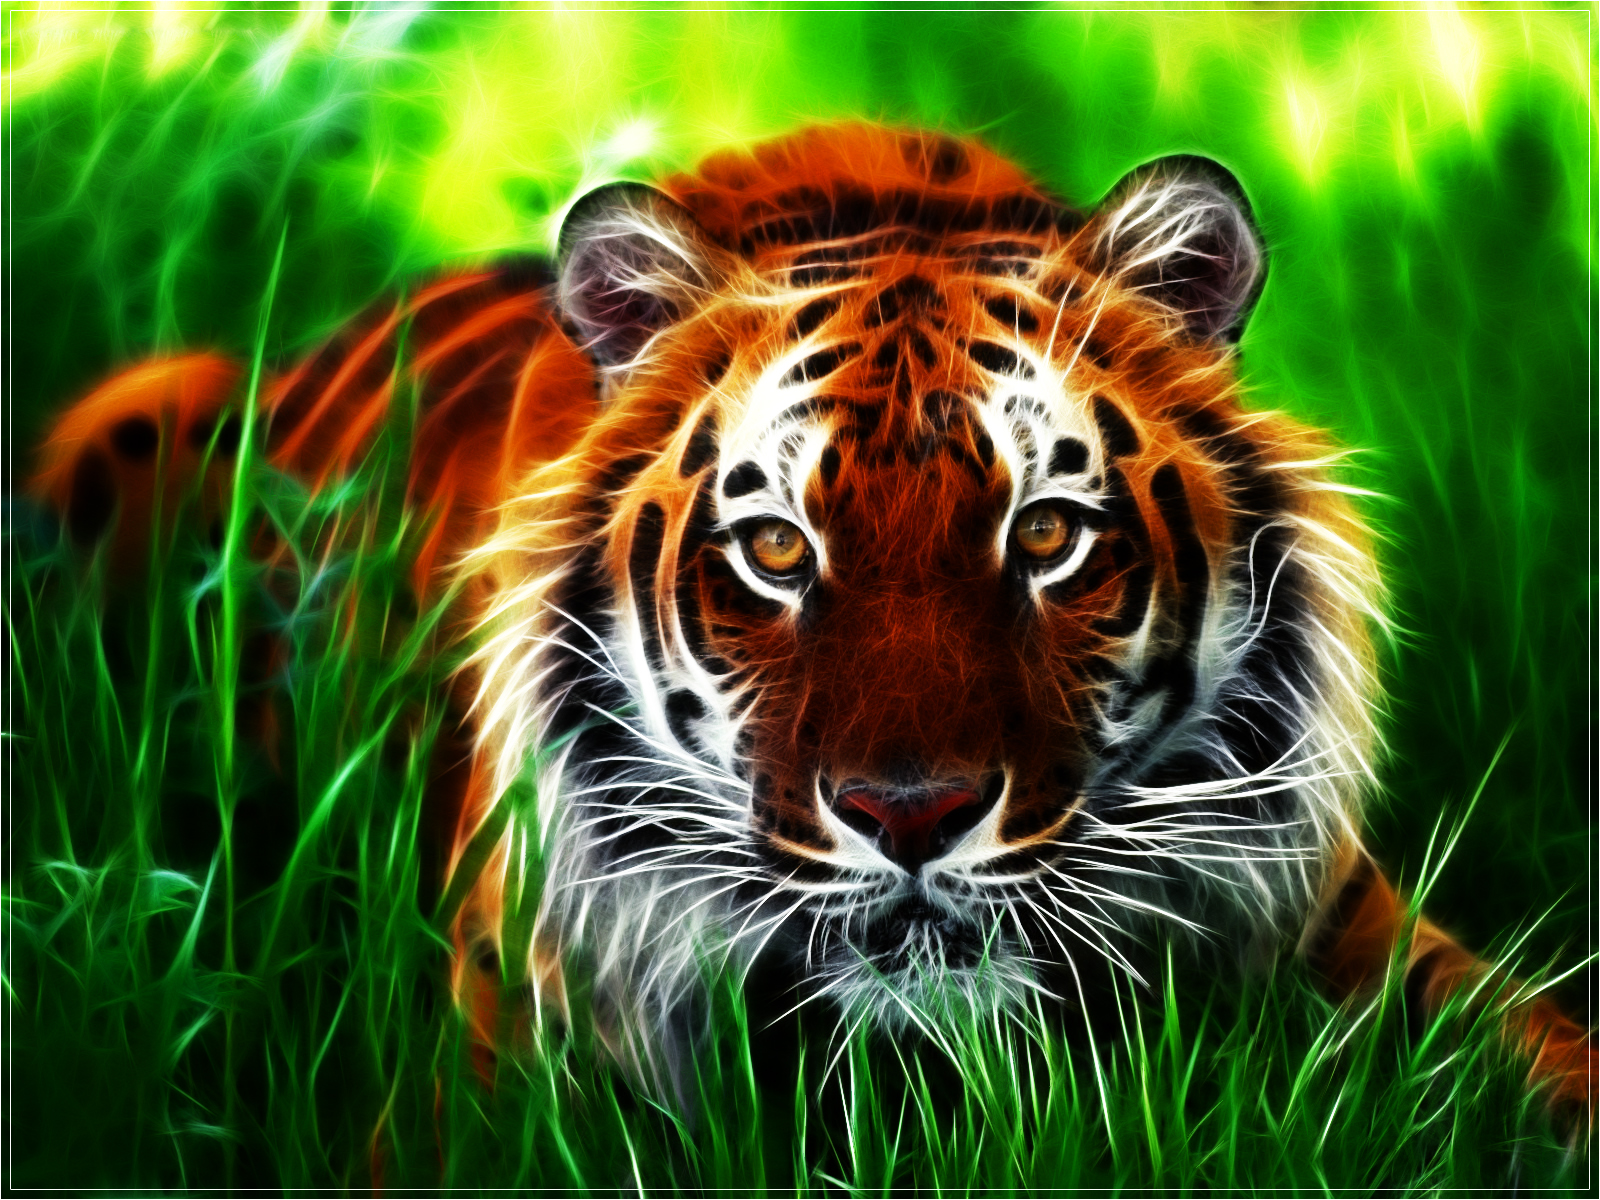 tiger wallpaper beautiful nature - hd desktop wallpapers | 4k hd